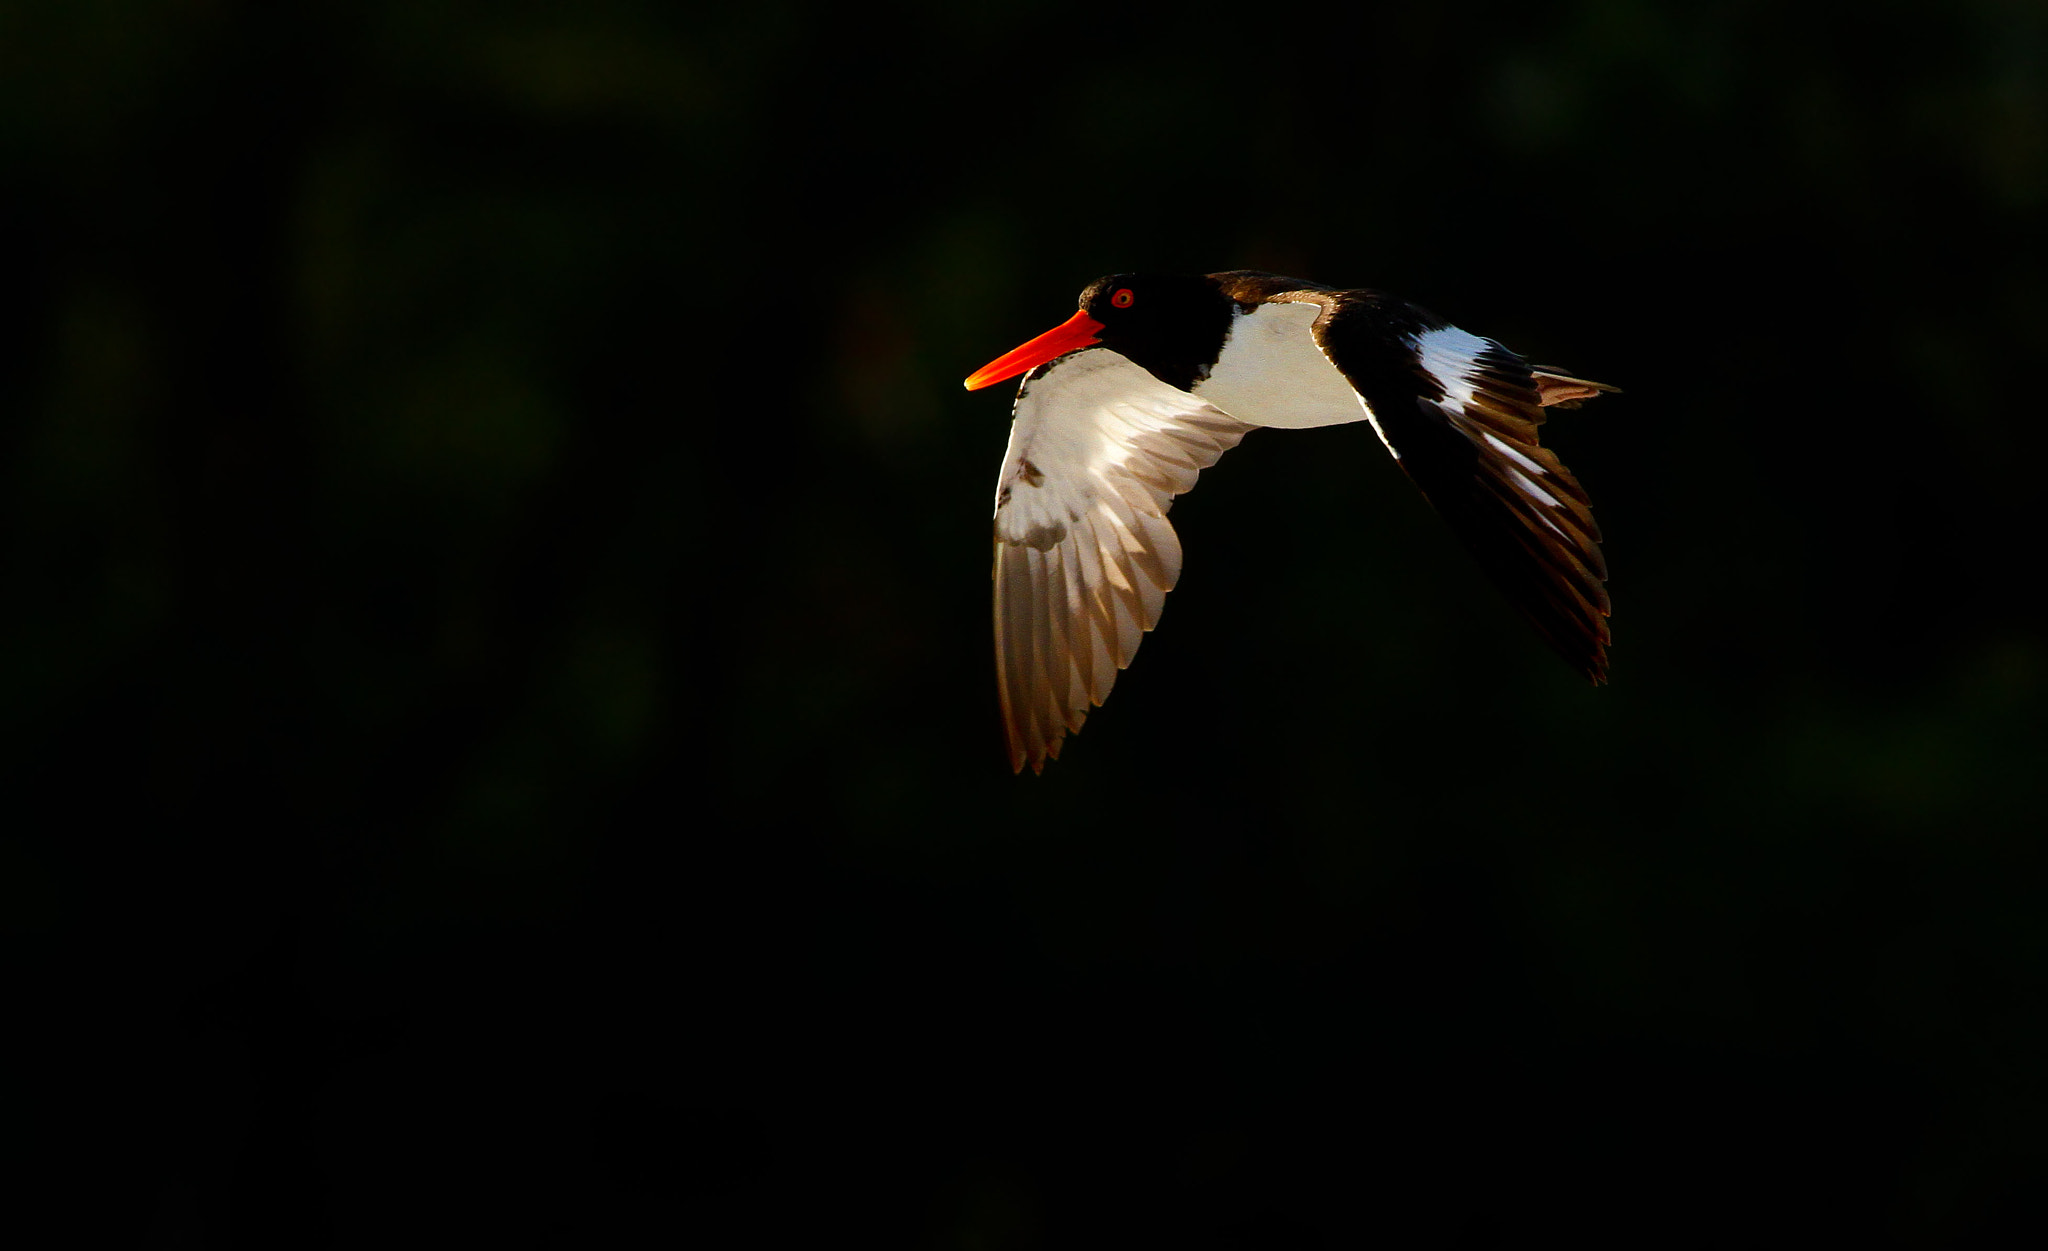 Photograph American Oystercatcher In Flight by Scott Helfrich on 500px